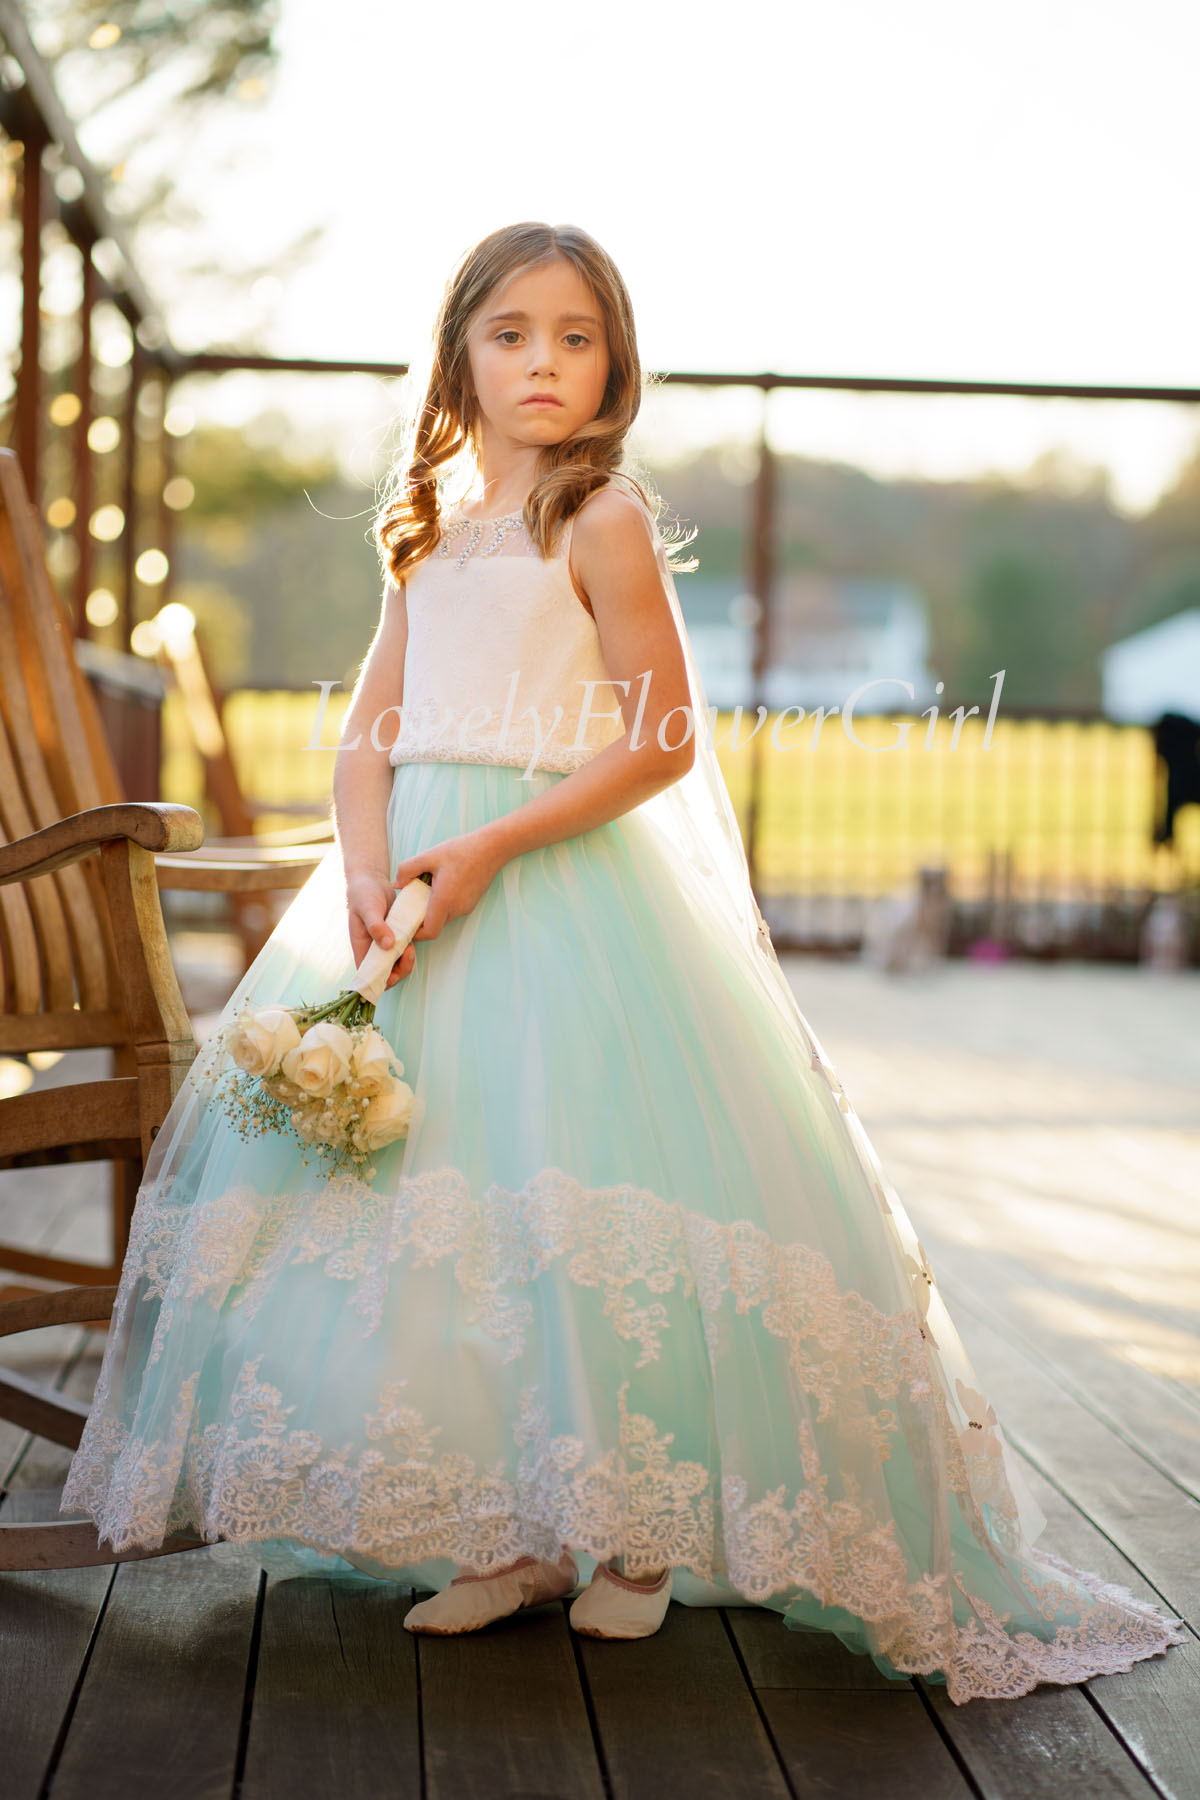 Sleeveless Lace Tulle Flower Girl Dress with Butterfly Veil